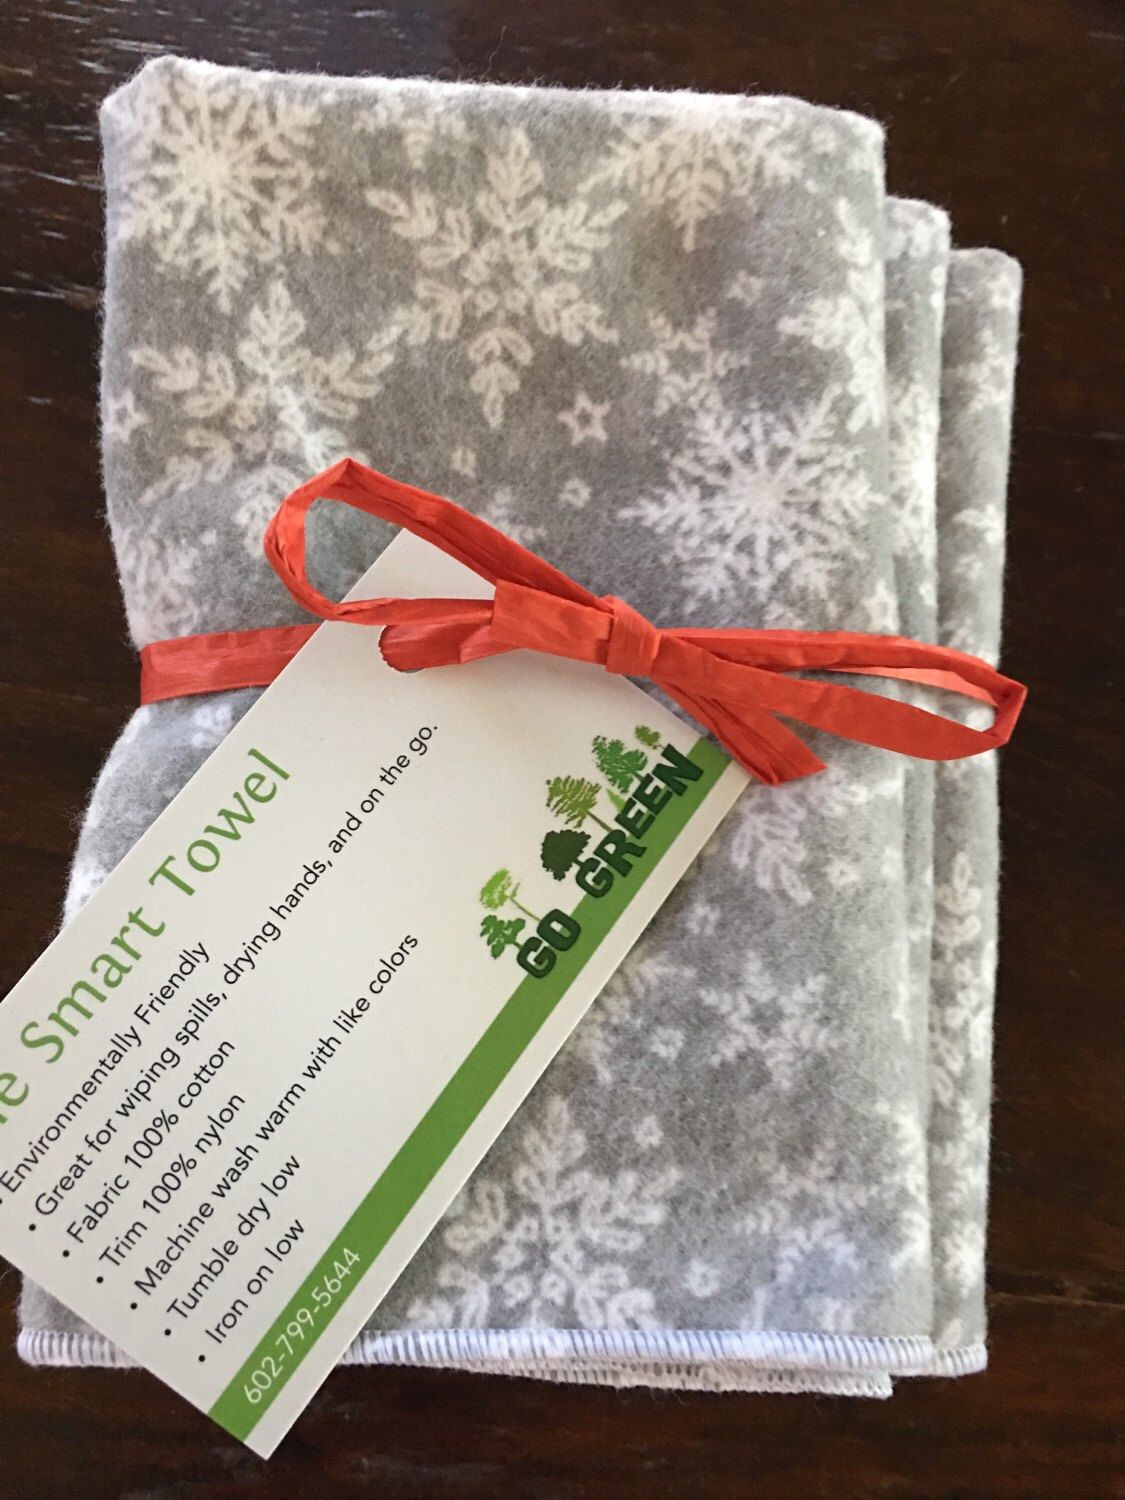 Endeavor flannel shirt  Grey Snowflake Holiday Cotton Flannel Unpaper Towel by Smartkin